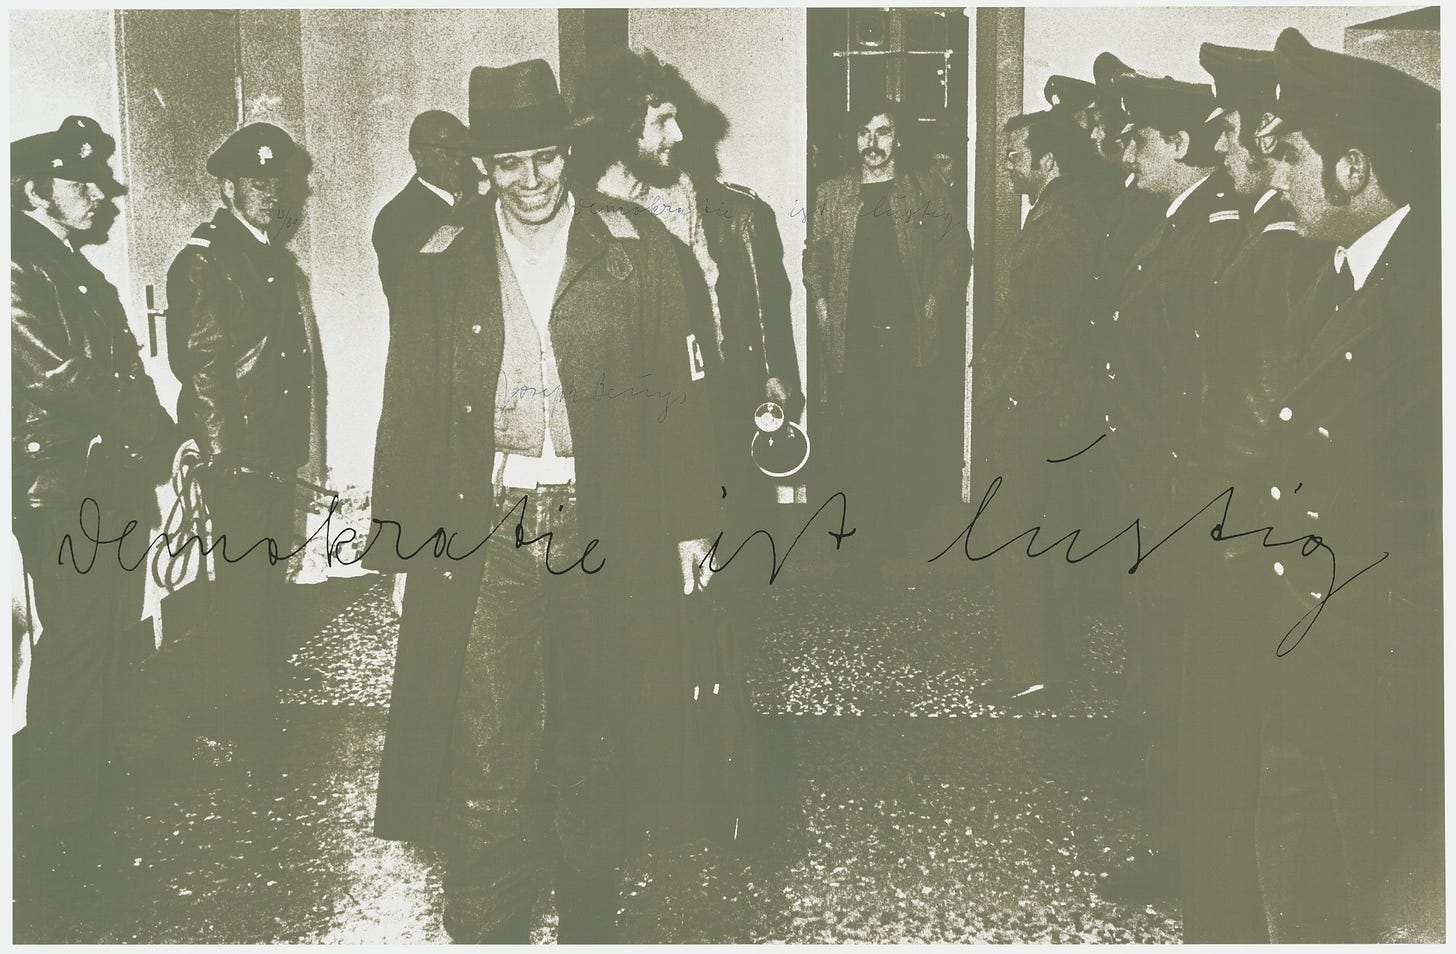 A black and white screenprinted photograph with a slight green tint. On top of the image are the words Demokratie ist lustig or Democracy is Merry. The photograph is of Joseph Beuys wearing a trench coat, jeans, and a fedora hat smirking as he is escorted from the Kunstakademia Düsseldorf where he was formerly employed as a teacher.